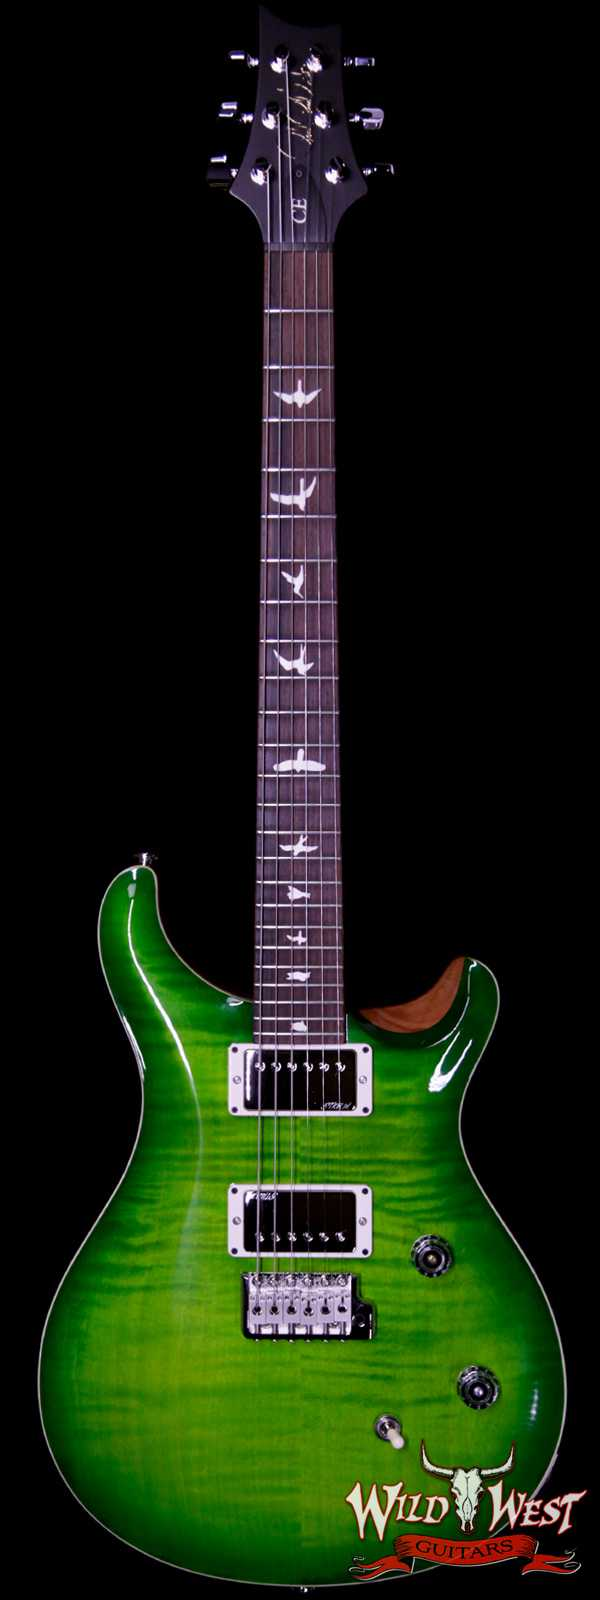 Paul Reed Smith PRS Wild West Guitars Special Run CE 24 Flame Top Painted Neck 57/08 Pickups Eriza Verde 283428